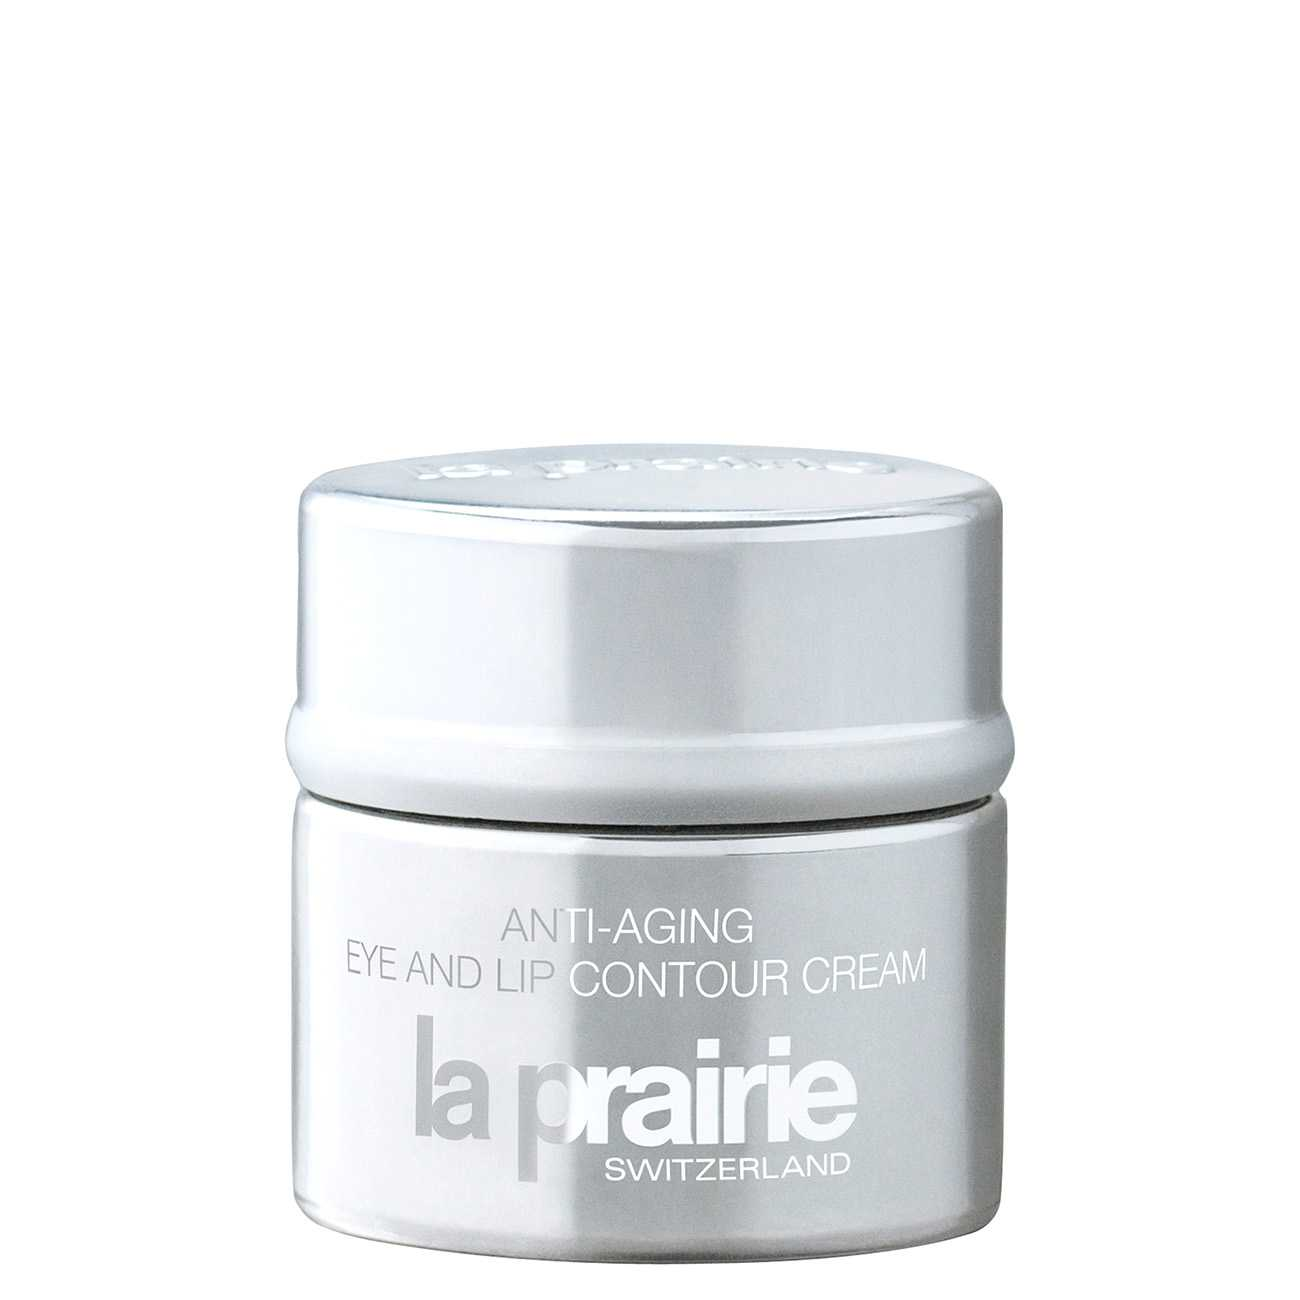 ANTI-AGING EYE AND LIP CONTOUR CREAM 20 ML